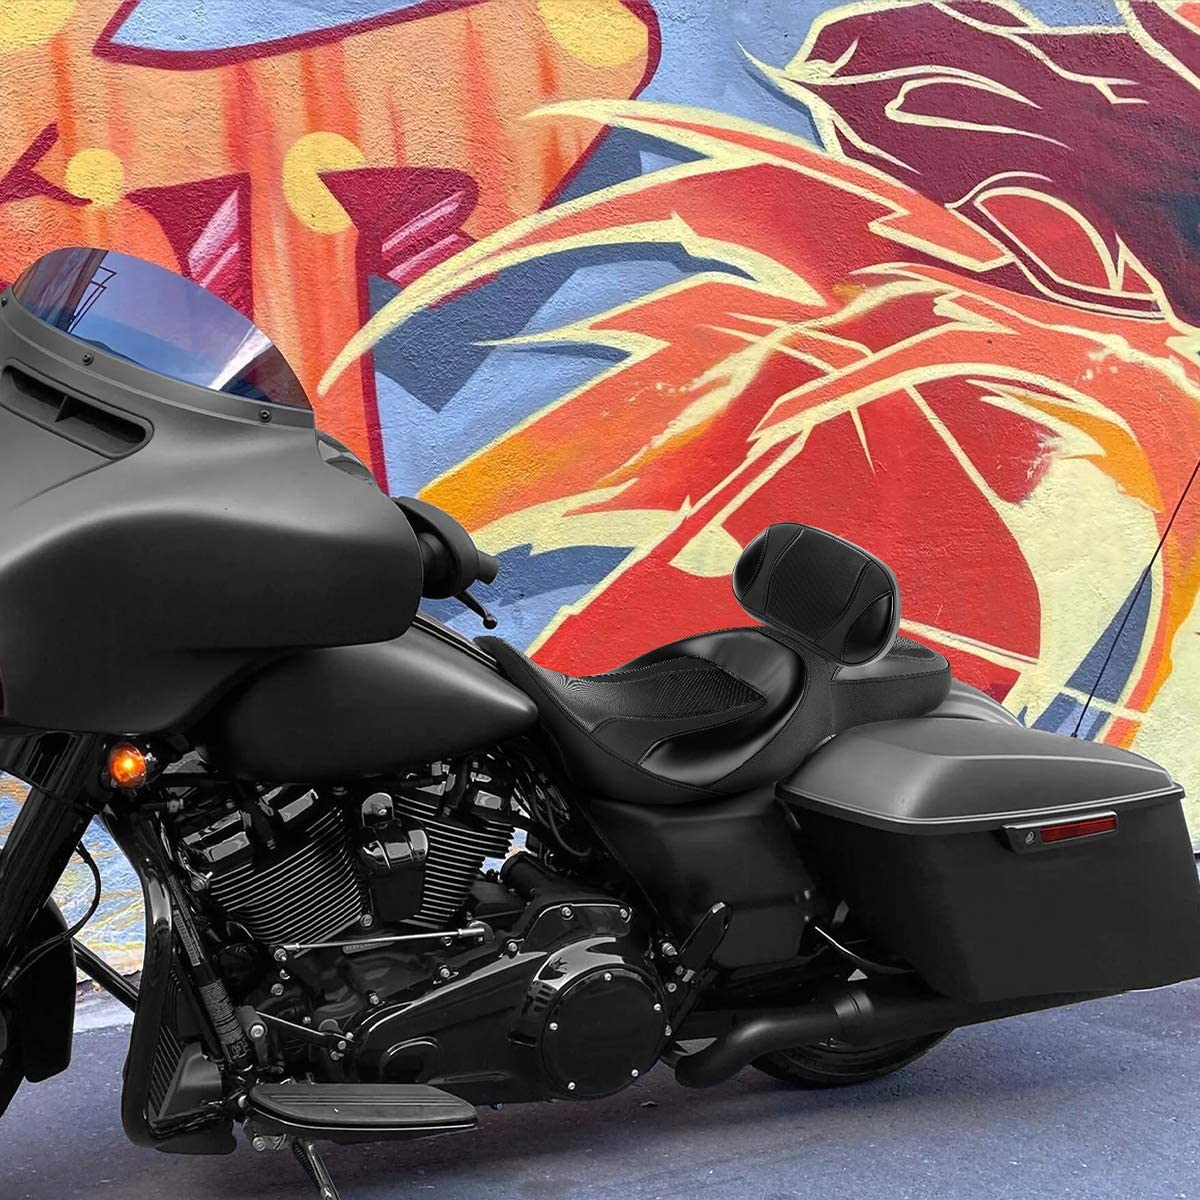 XFMT Low Profile One-Piece 2-Up Driver Passenger Seat W//Rider Backrest Pad For Harley Davidson Touring Road King CVO 2009-2020